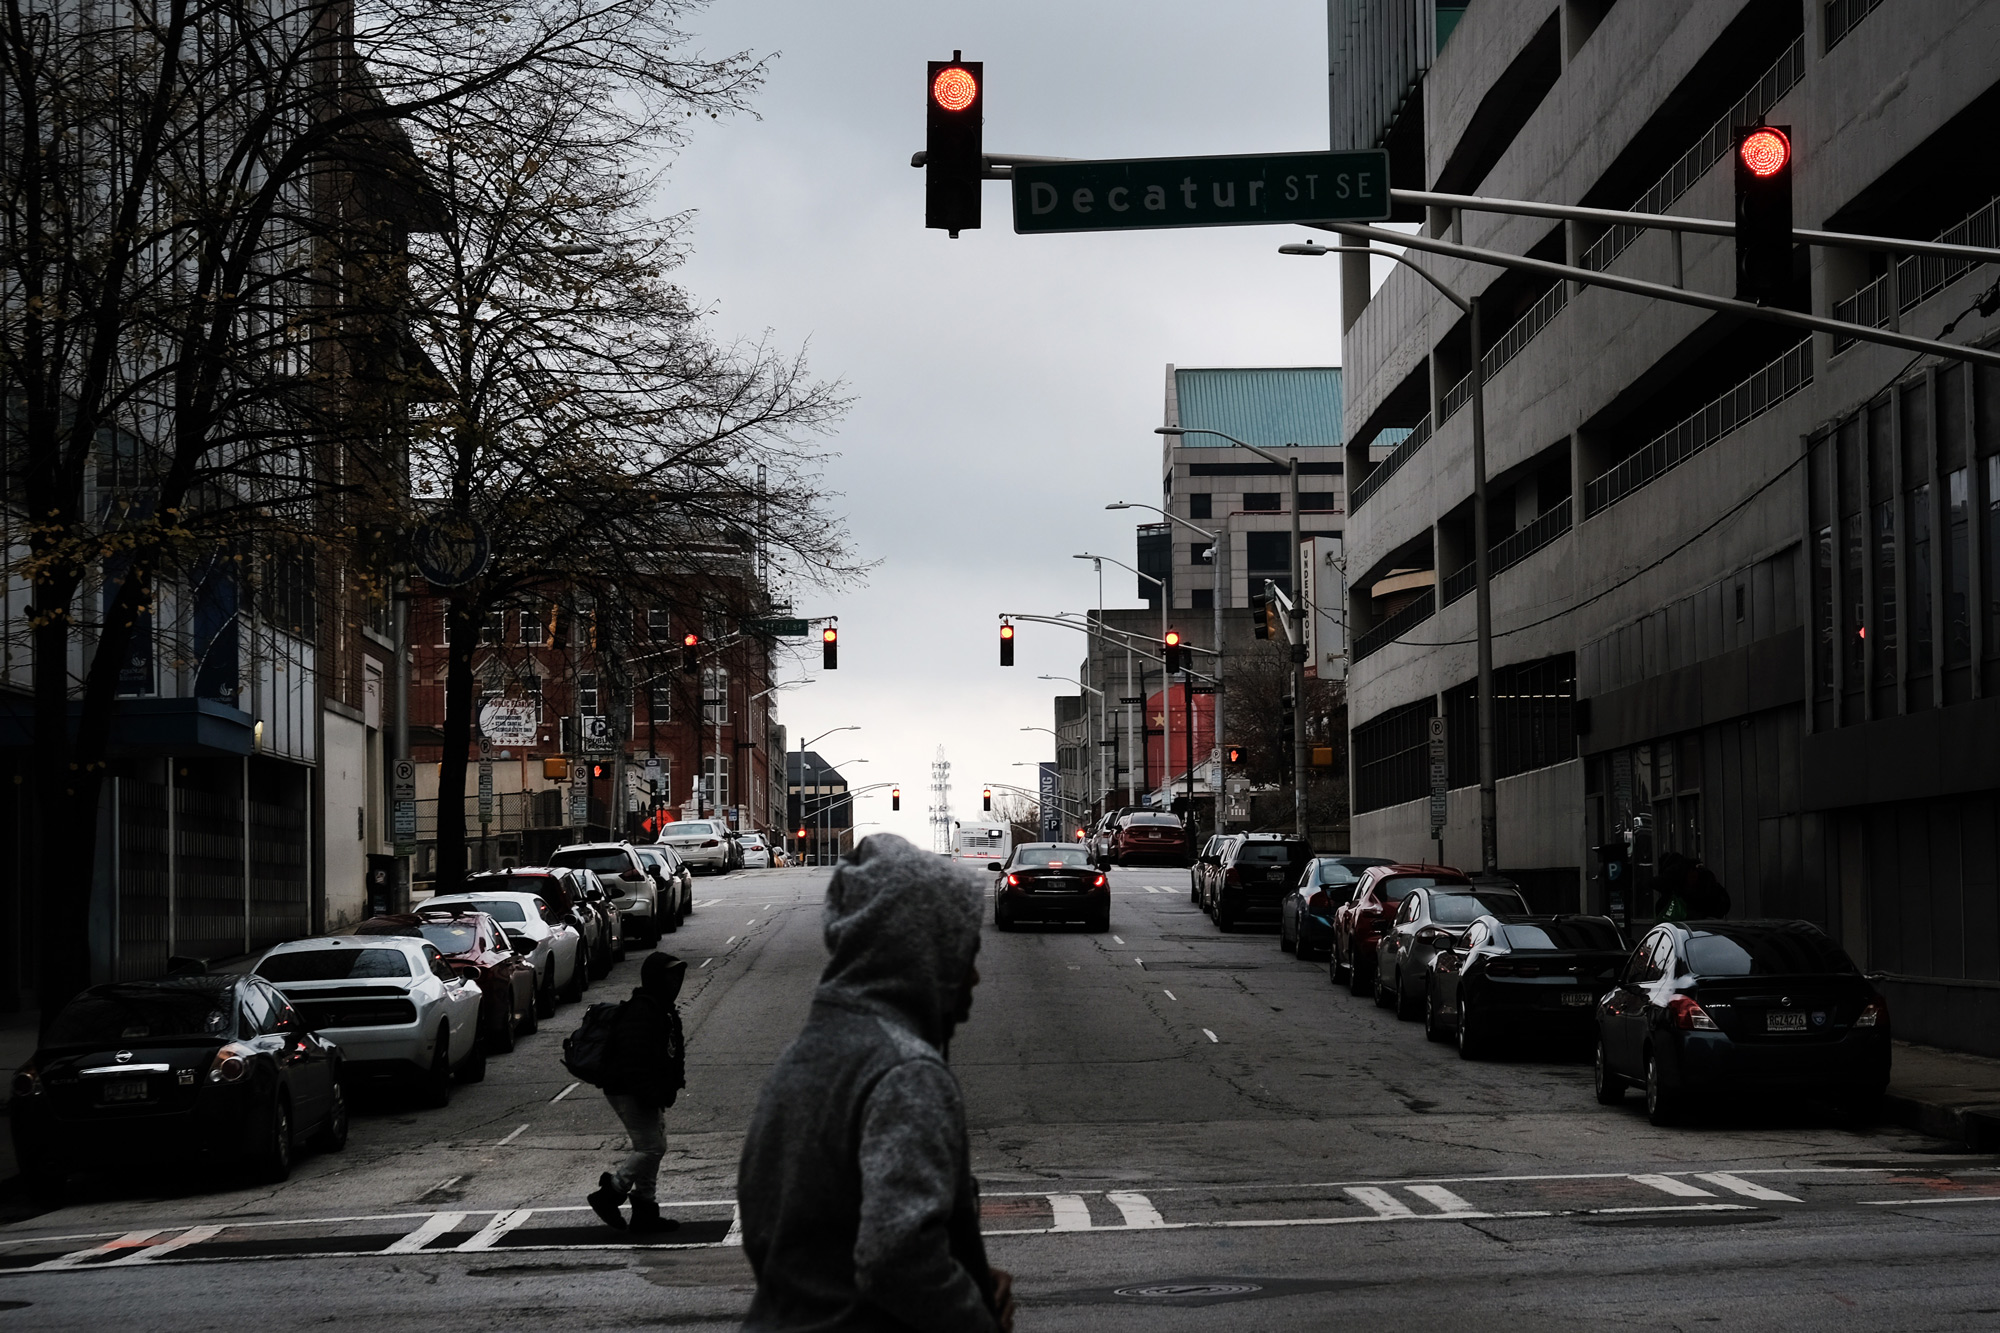 Few people walk through the streets of downtown Atlanta on December 7, 2020.